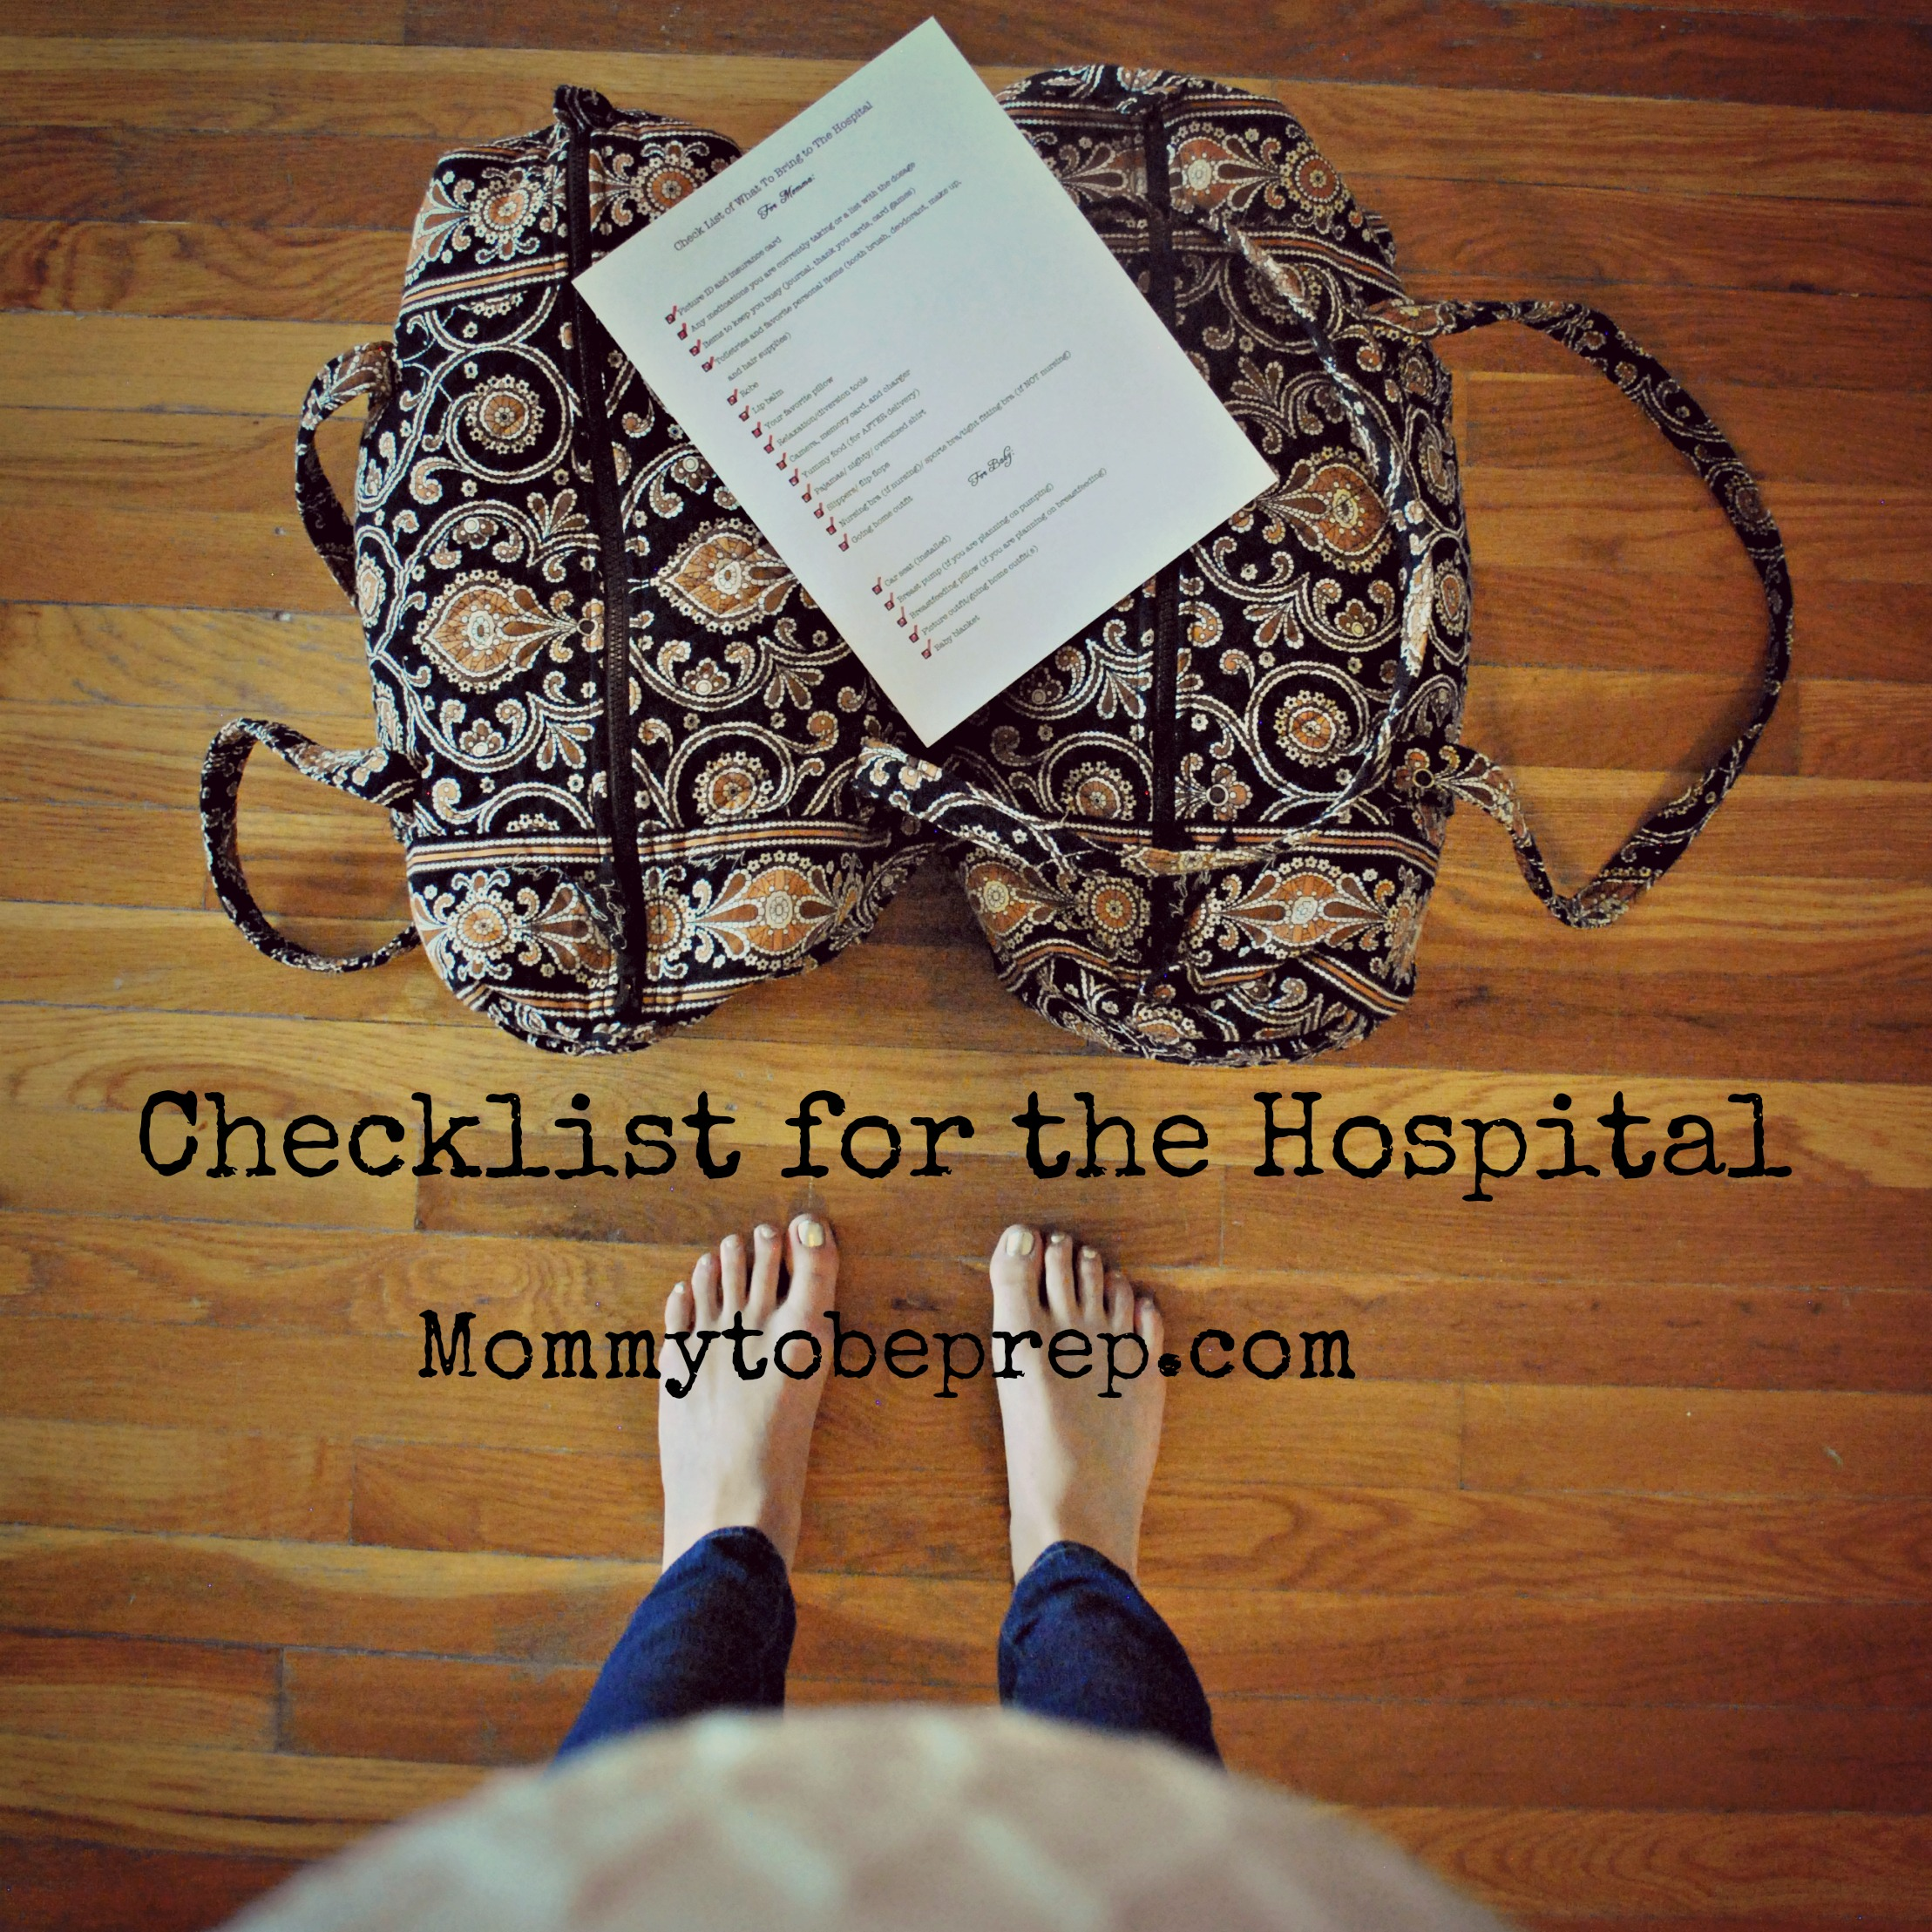 Check List of What to Bring to the Hospital